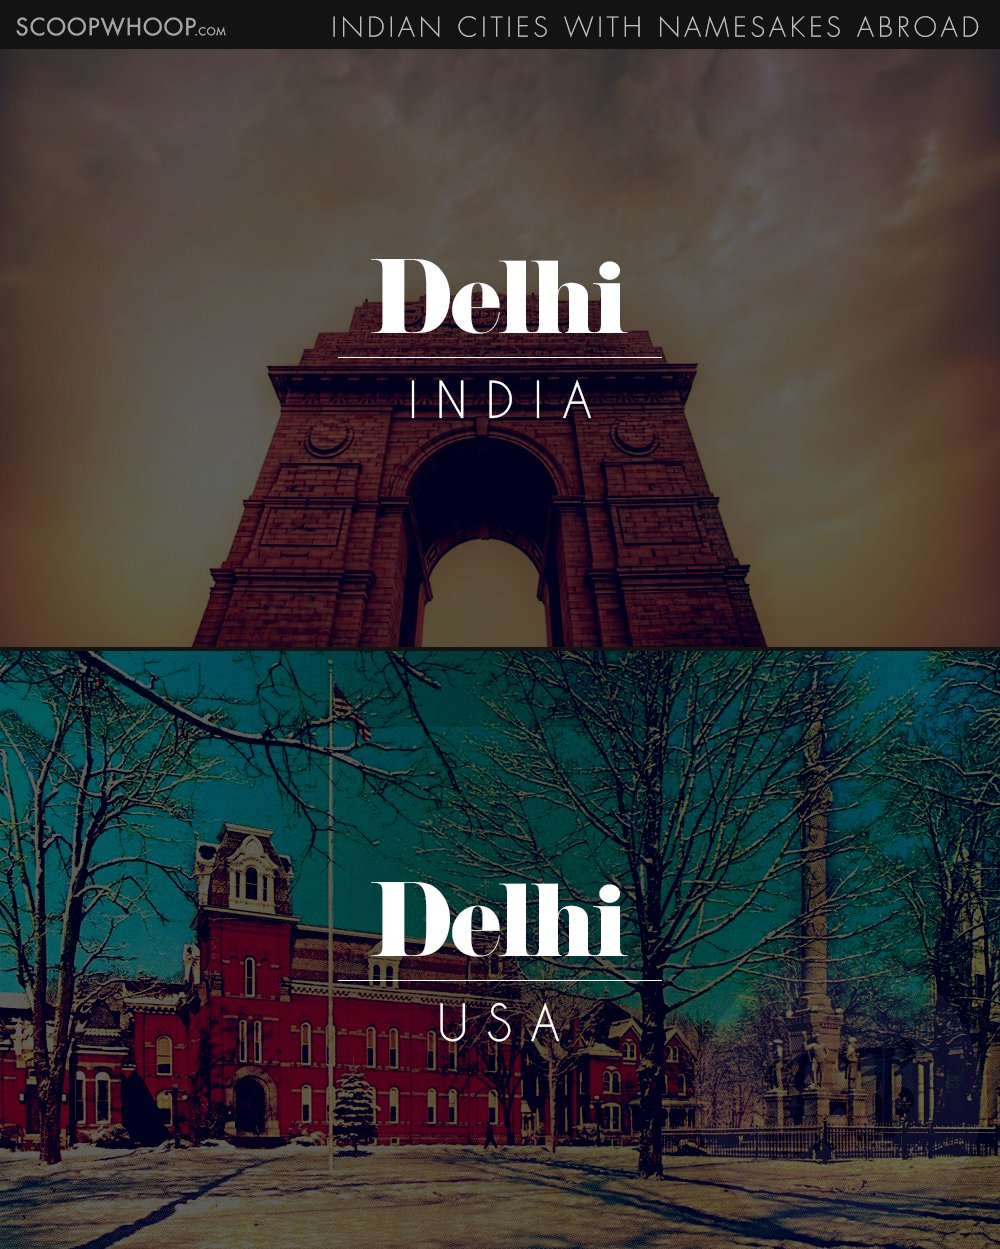 14 Places Around The World That Share Their Names With Famous Indian